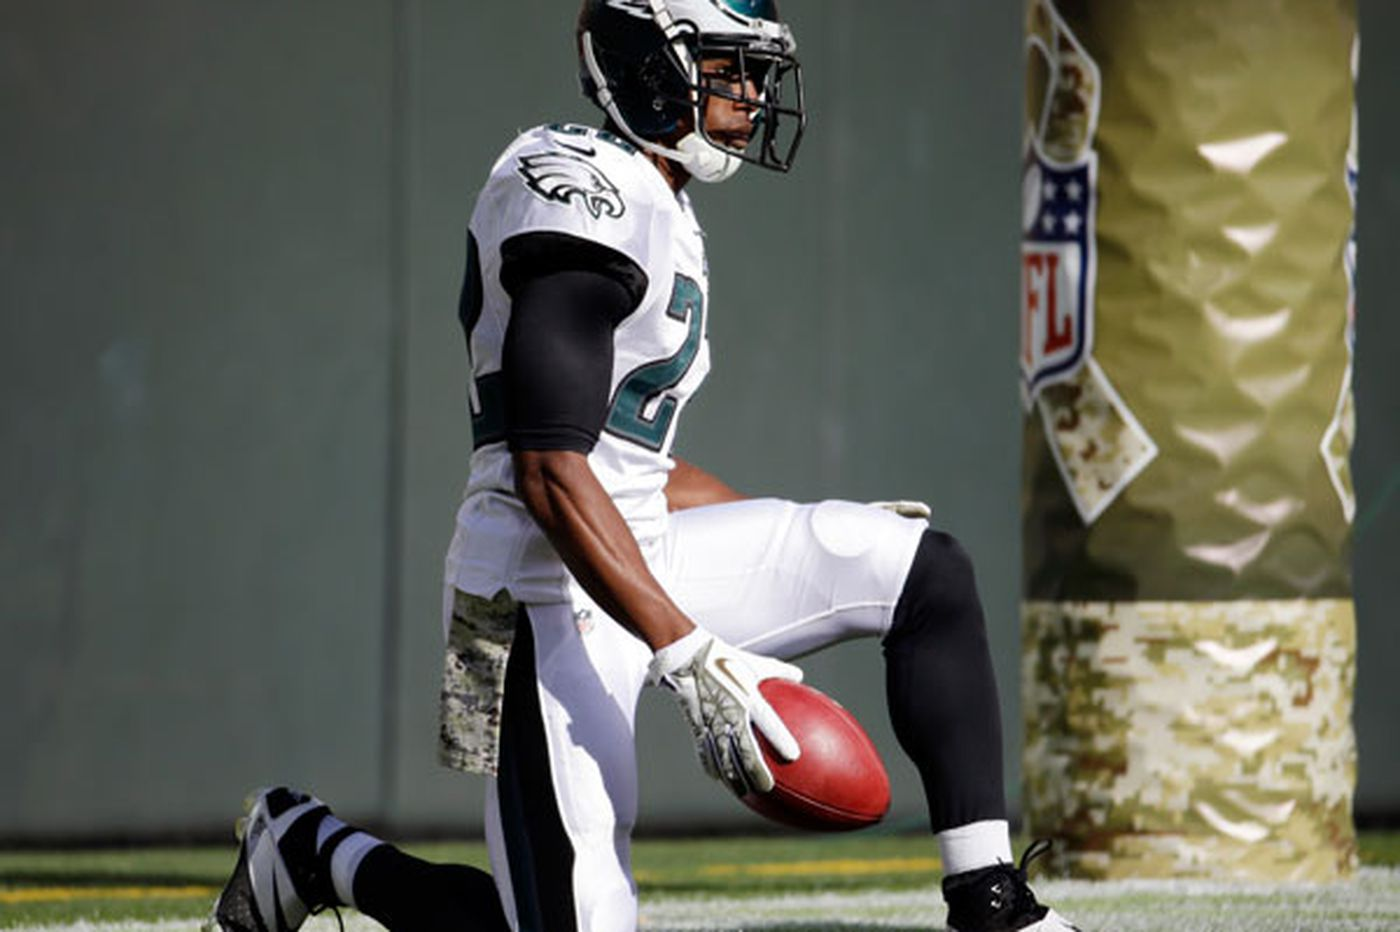 Boykin cleared to play, hopes to boost struggling secondary